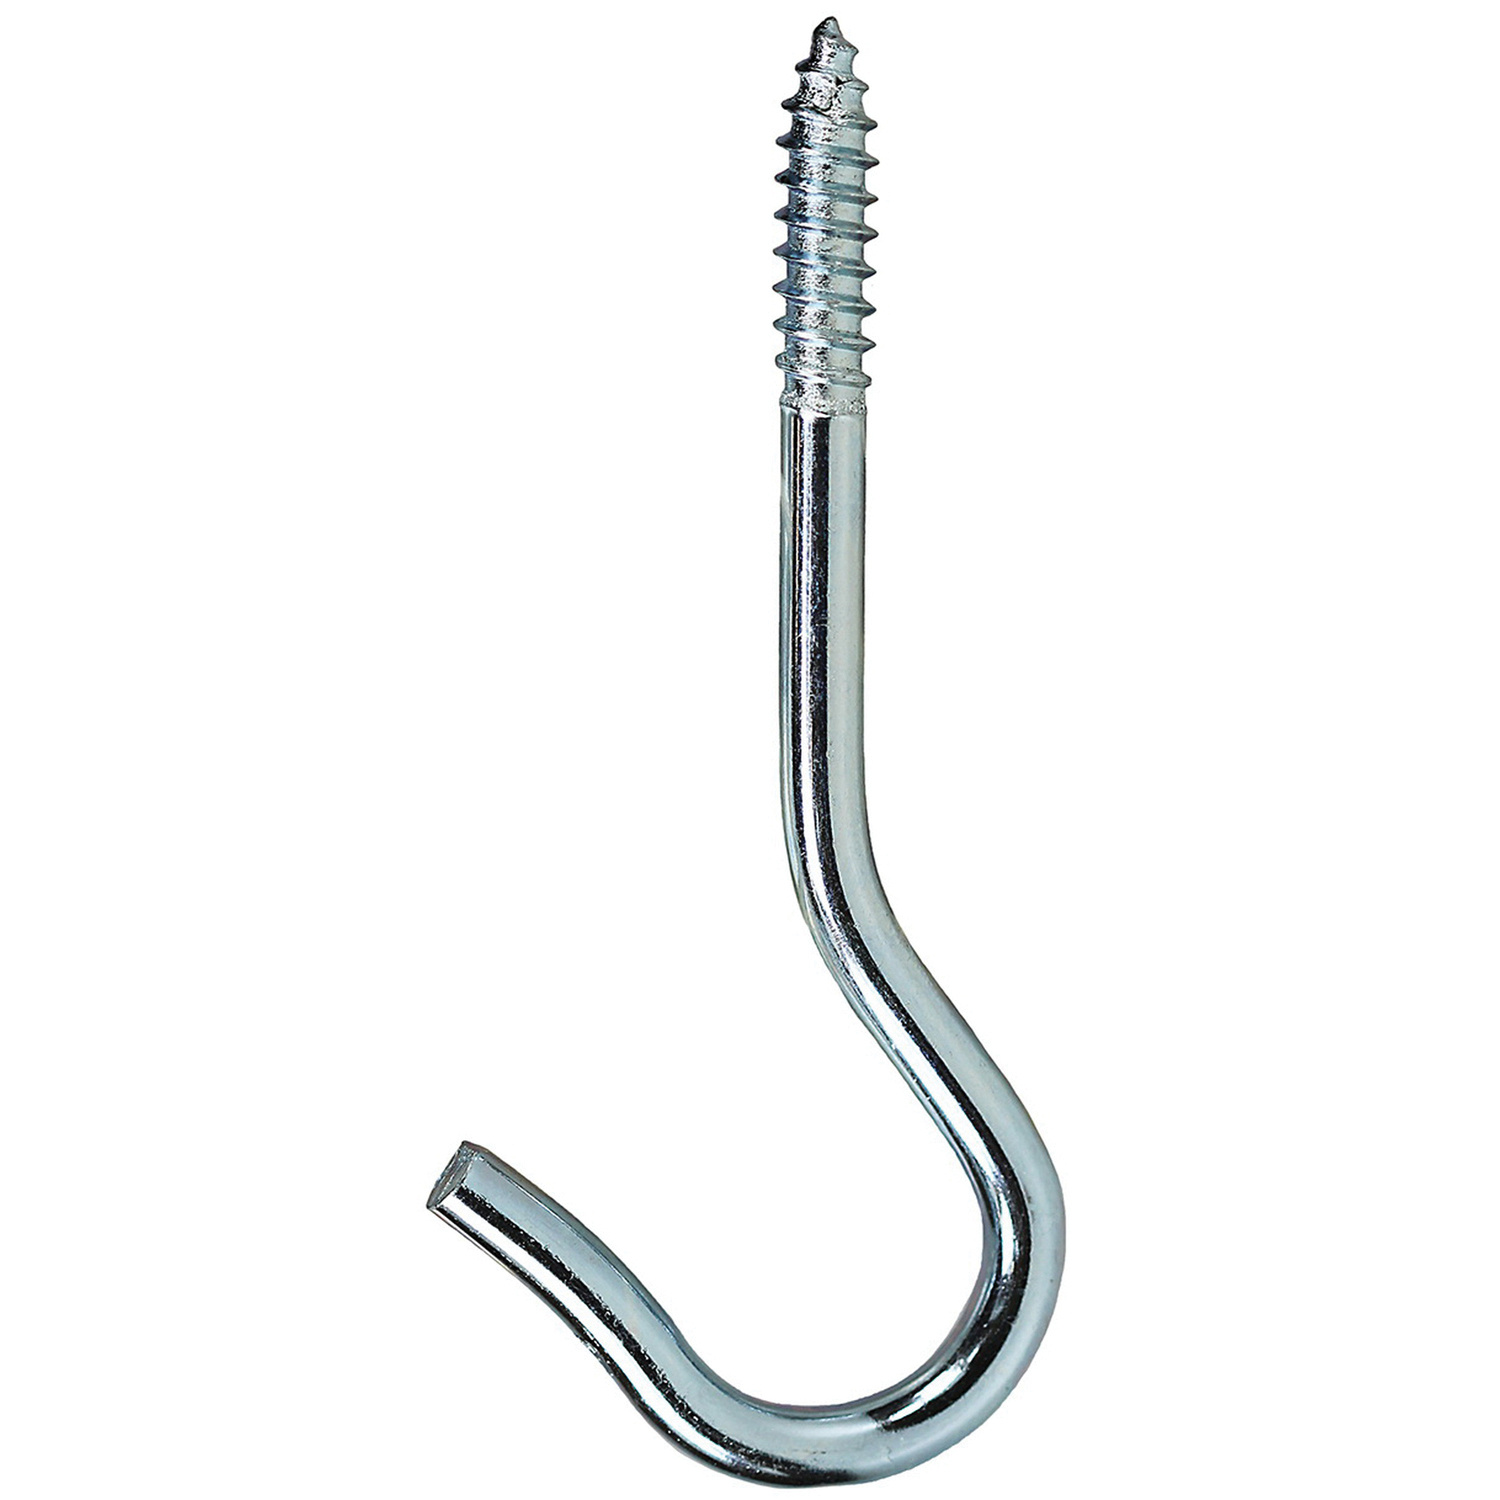 Dottie Sh60 Round Bend Screw Hook 7 8 Inch 3 3 8 Inch Zinc